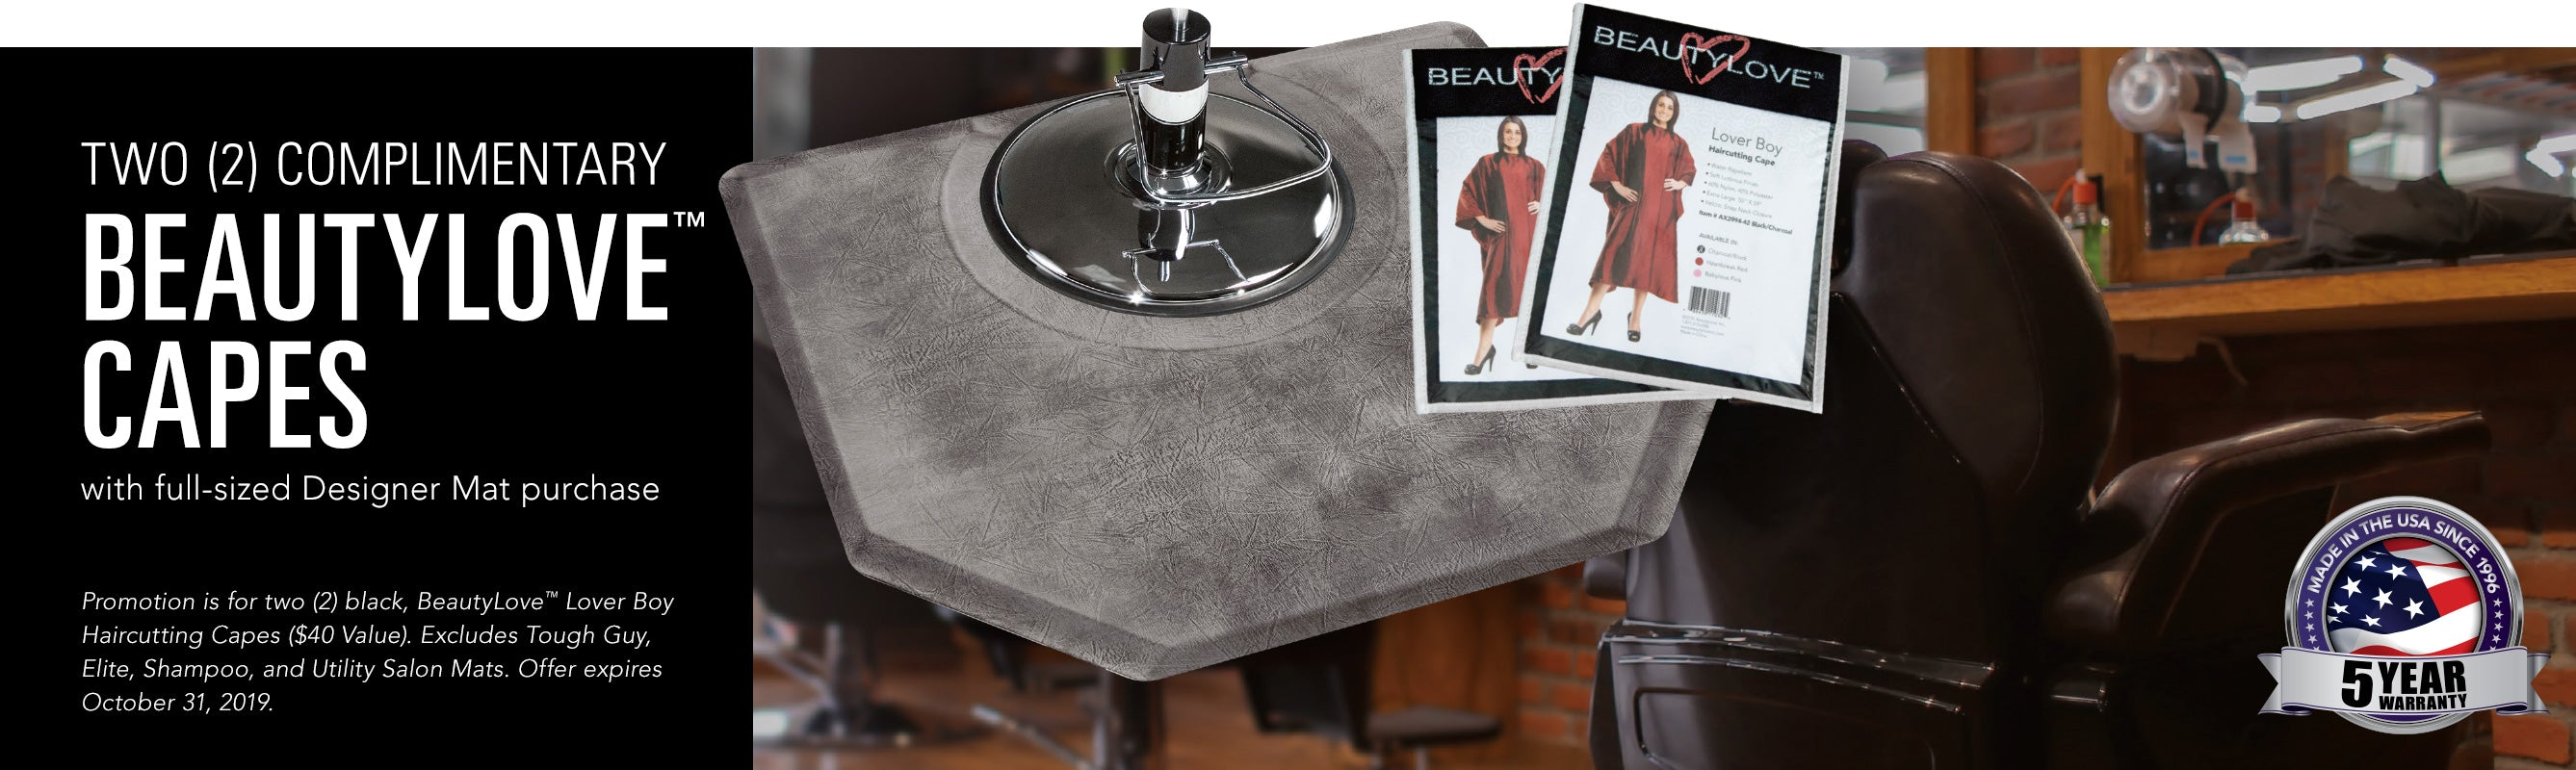 Two Complimentary BeautyLove Capes with full-sized Designer Mat purchase